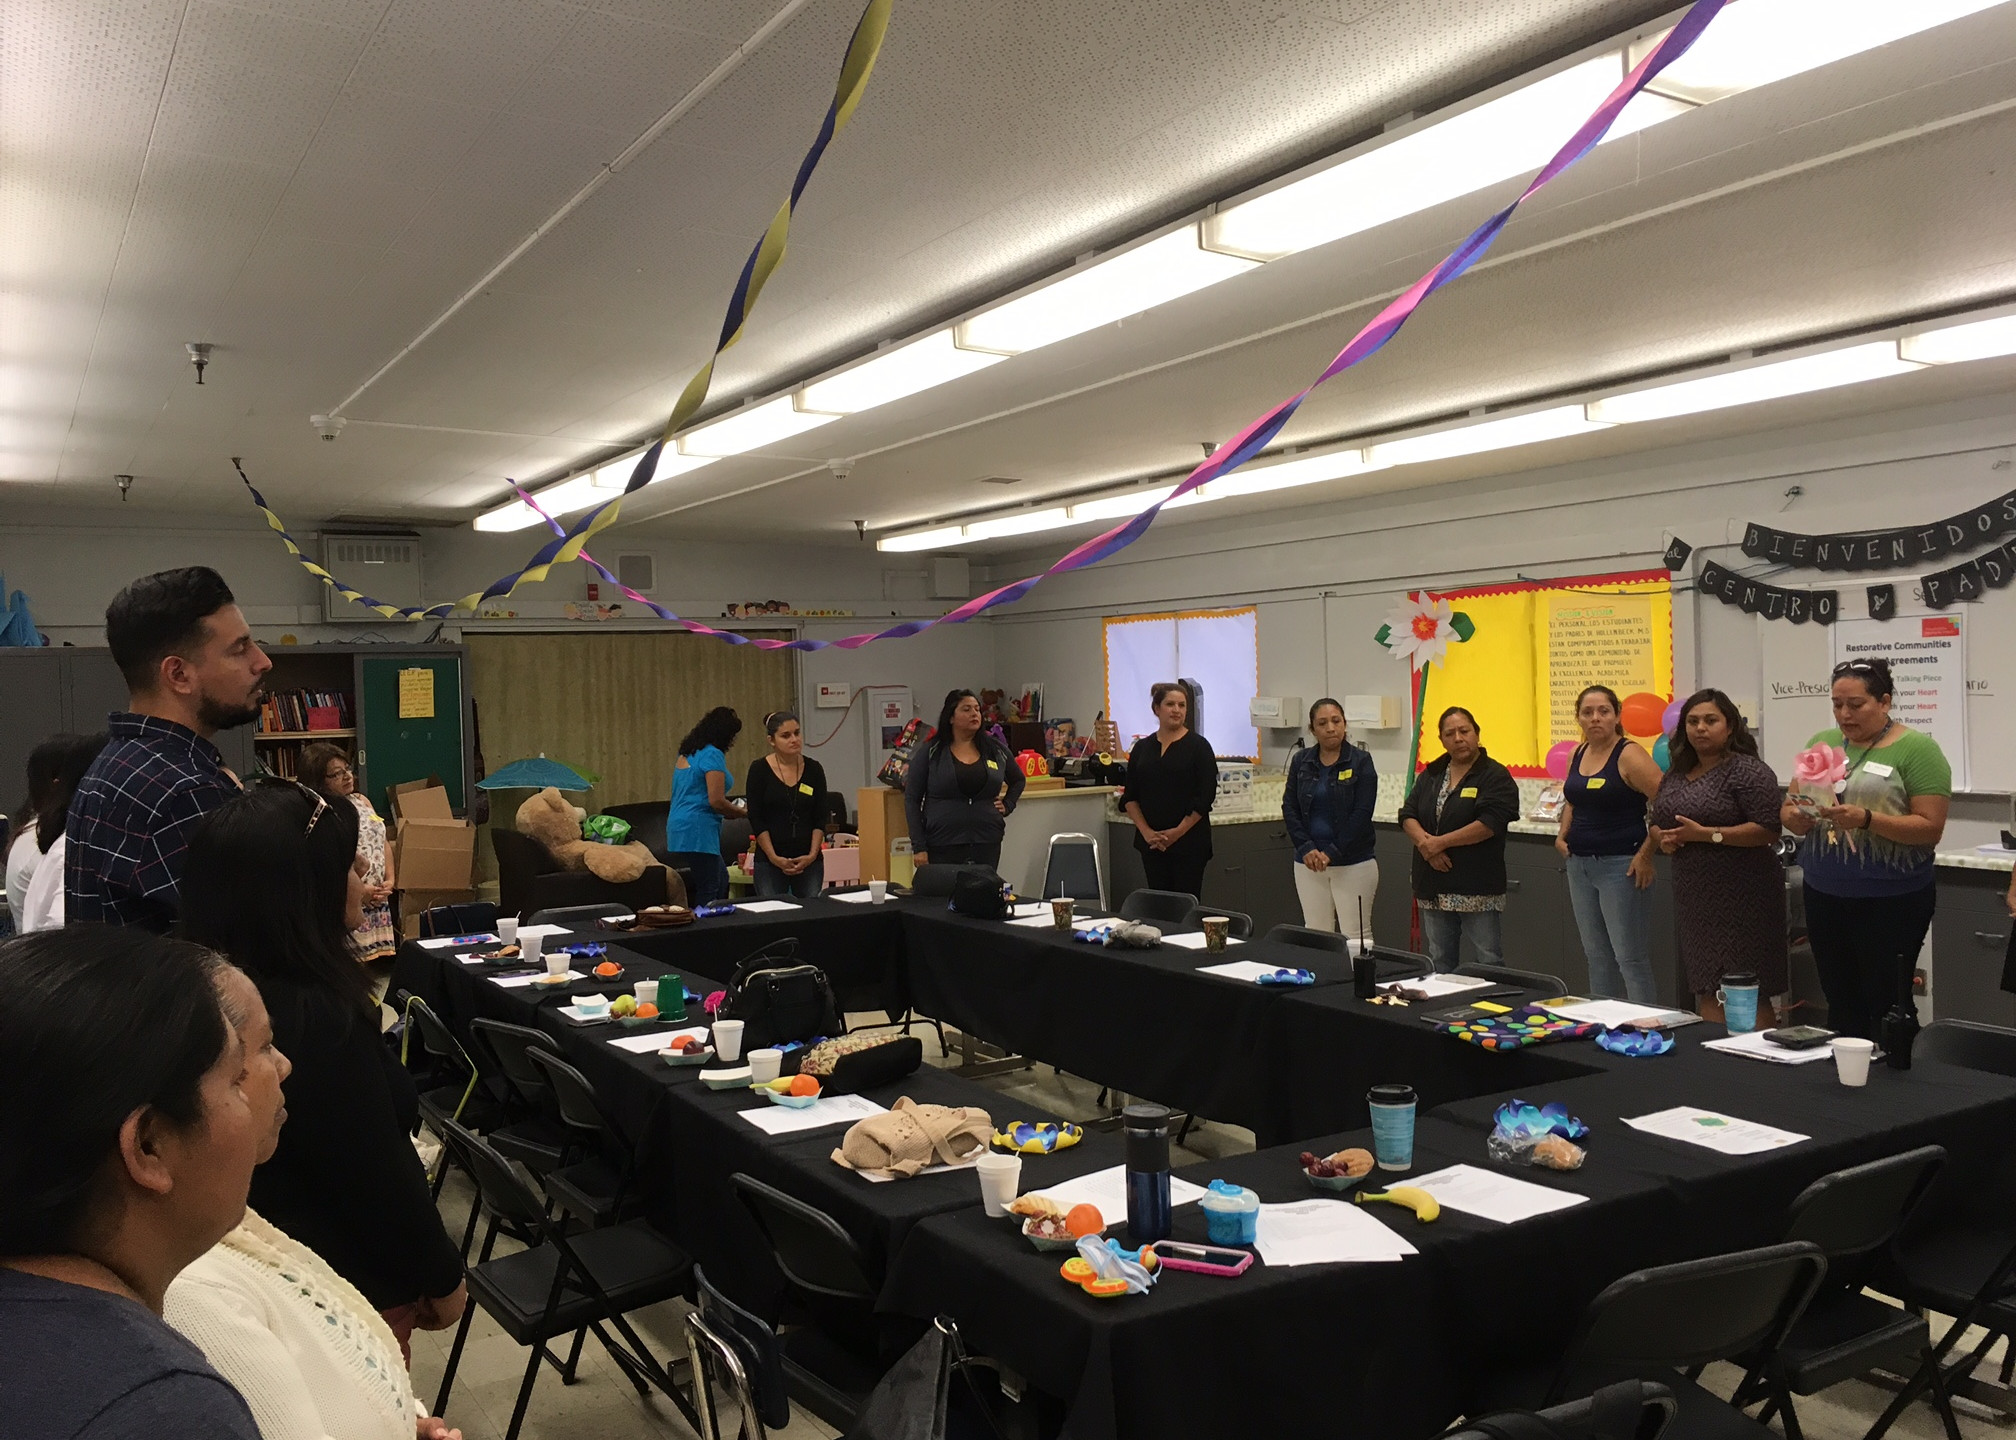 Hollenbeck parents, partners and staff gathered to have cafecito with Promesa staff and talk about the year ahead.